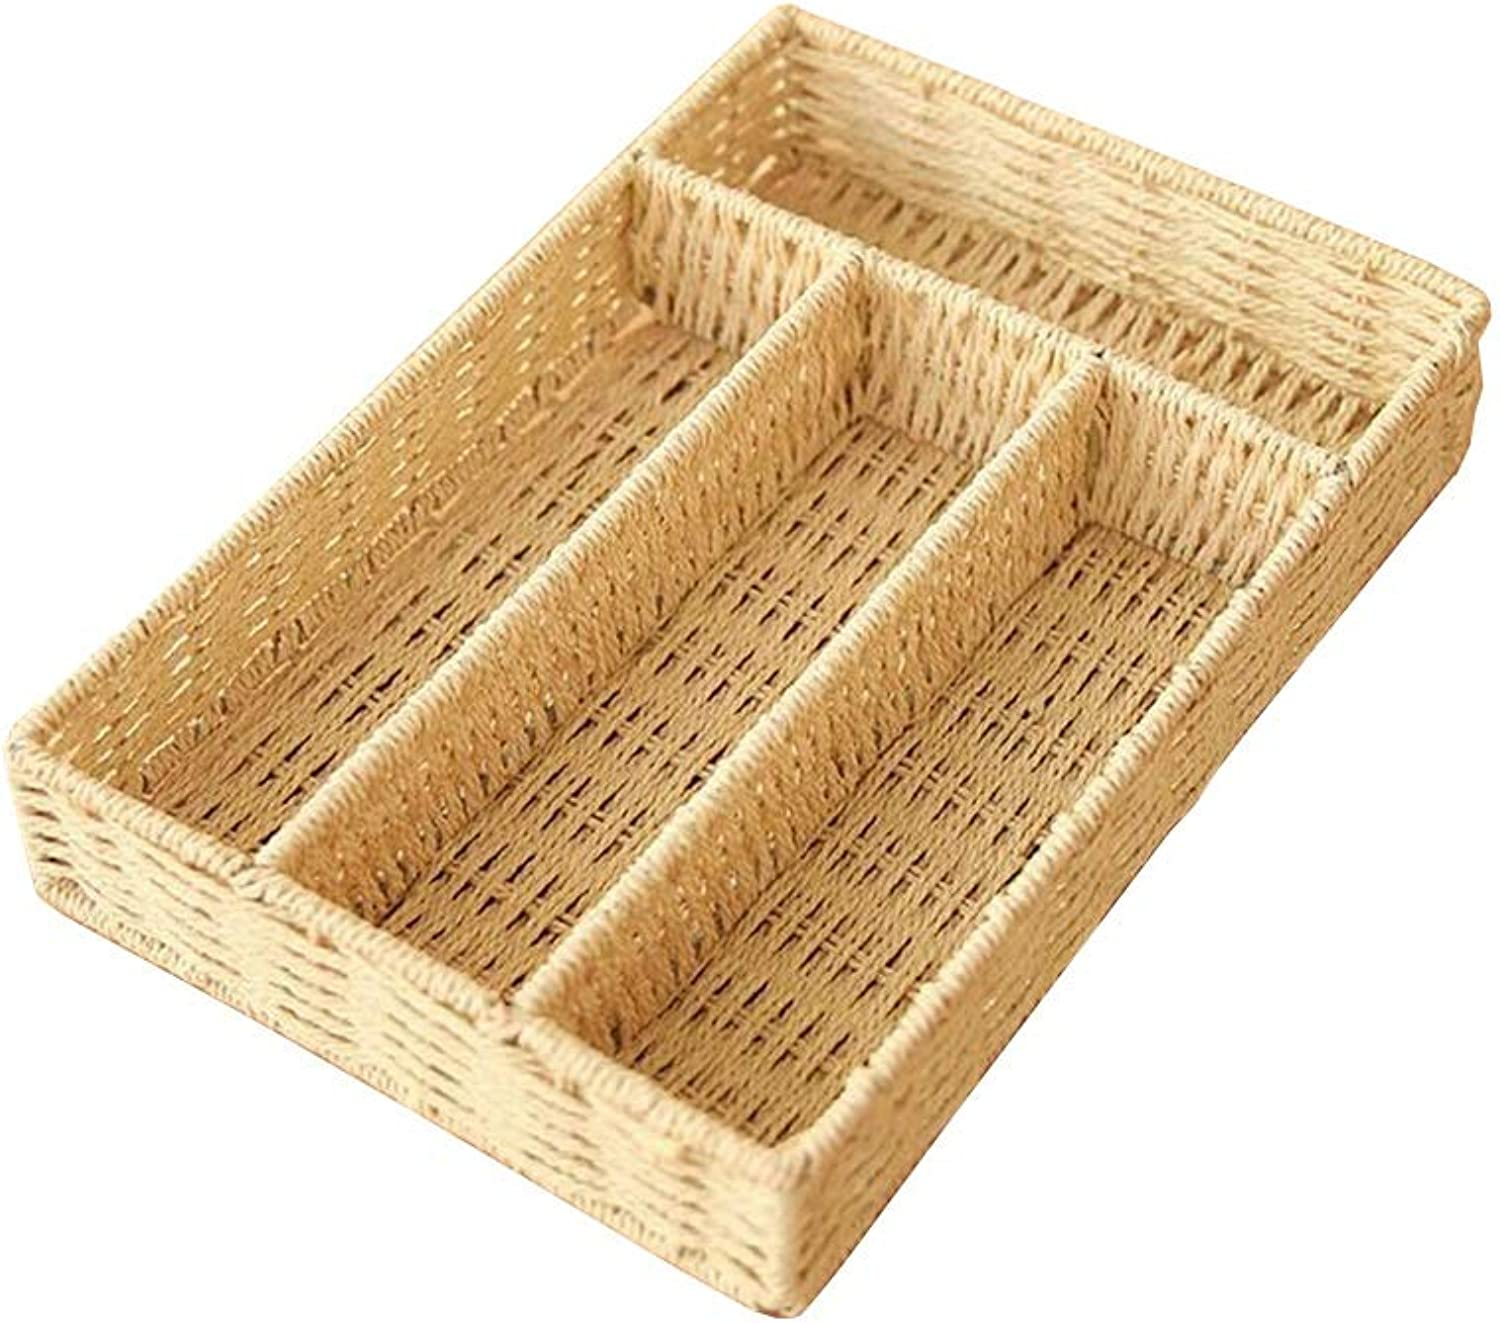 MUMA Storage Baskets Paper Rope Weaving Handmade Fruit Food Snack Box 4 Grid (color   Beige)